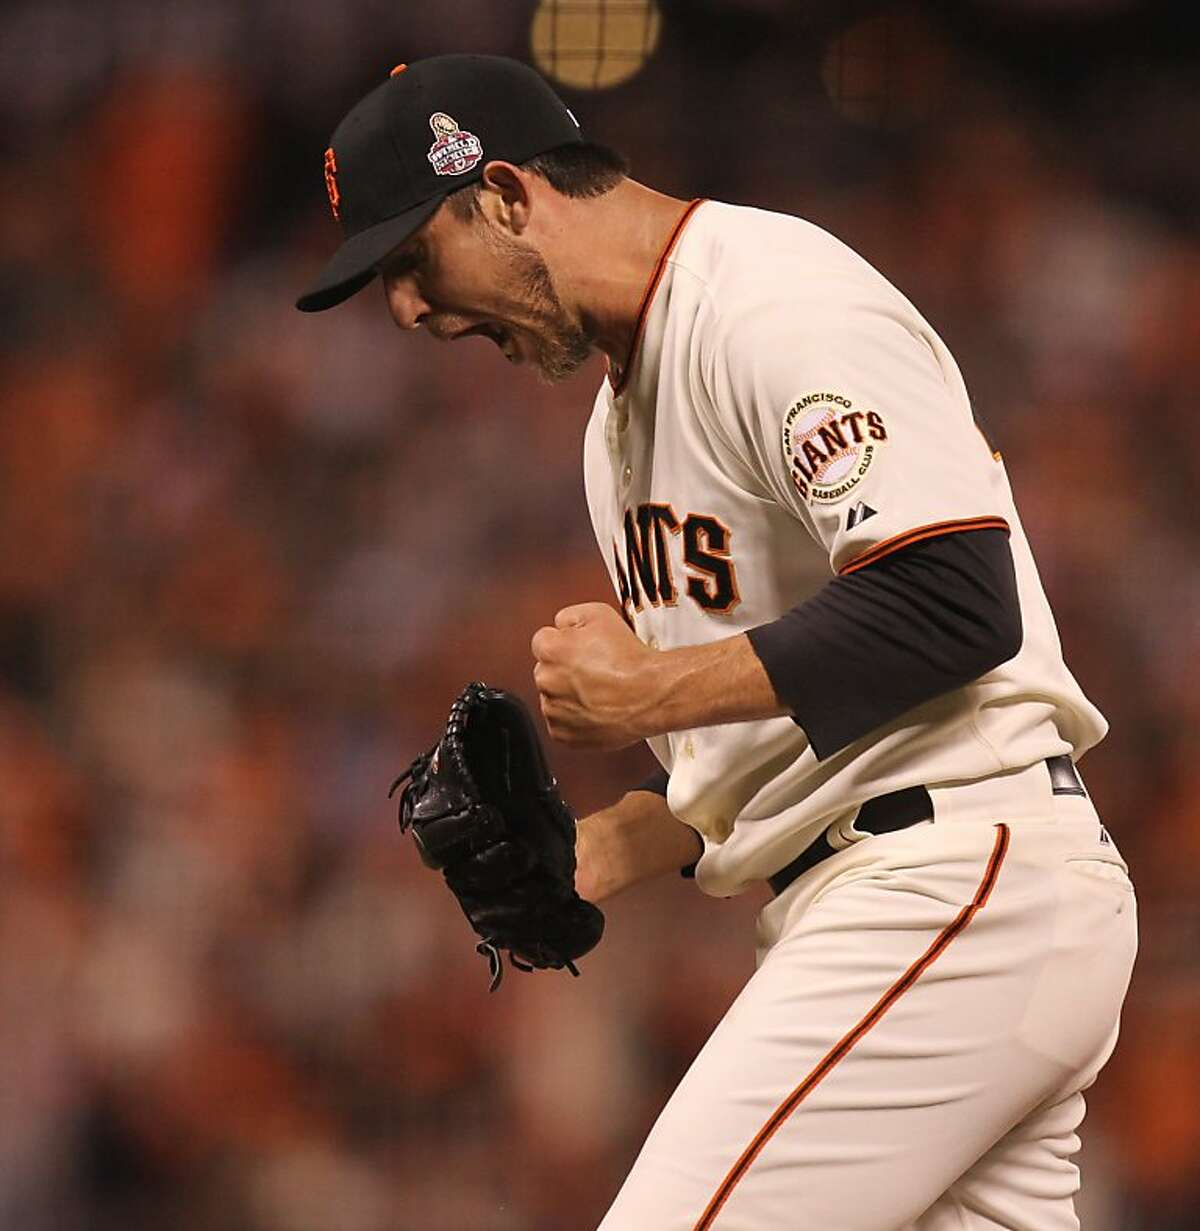 Giants' pitcher Madison Bumgarner reacts after retiring the side in the 6th inning during game 2 of the World Series at AT&T Park on Thursday, Oct. 25, 2012 in San Francisco, Calif.